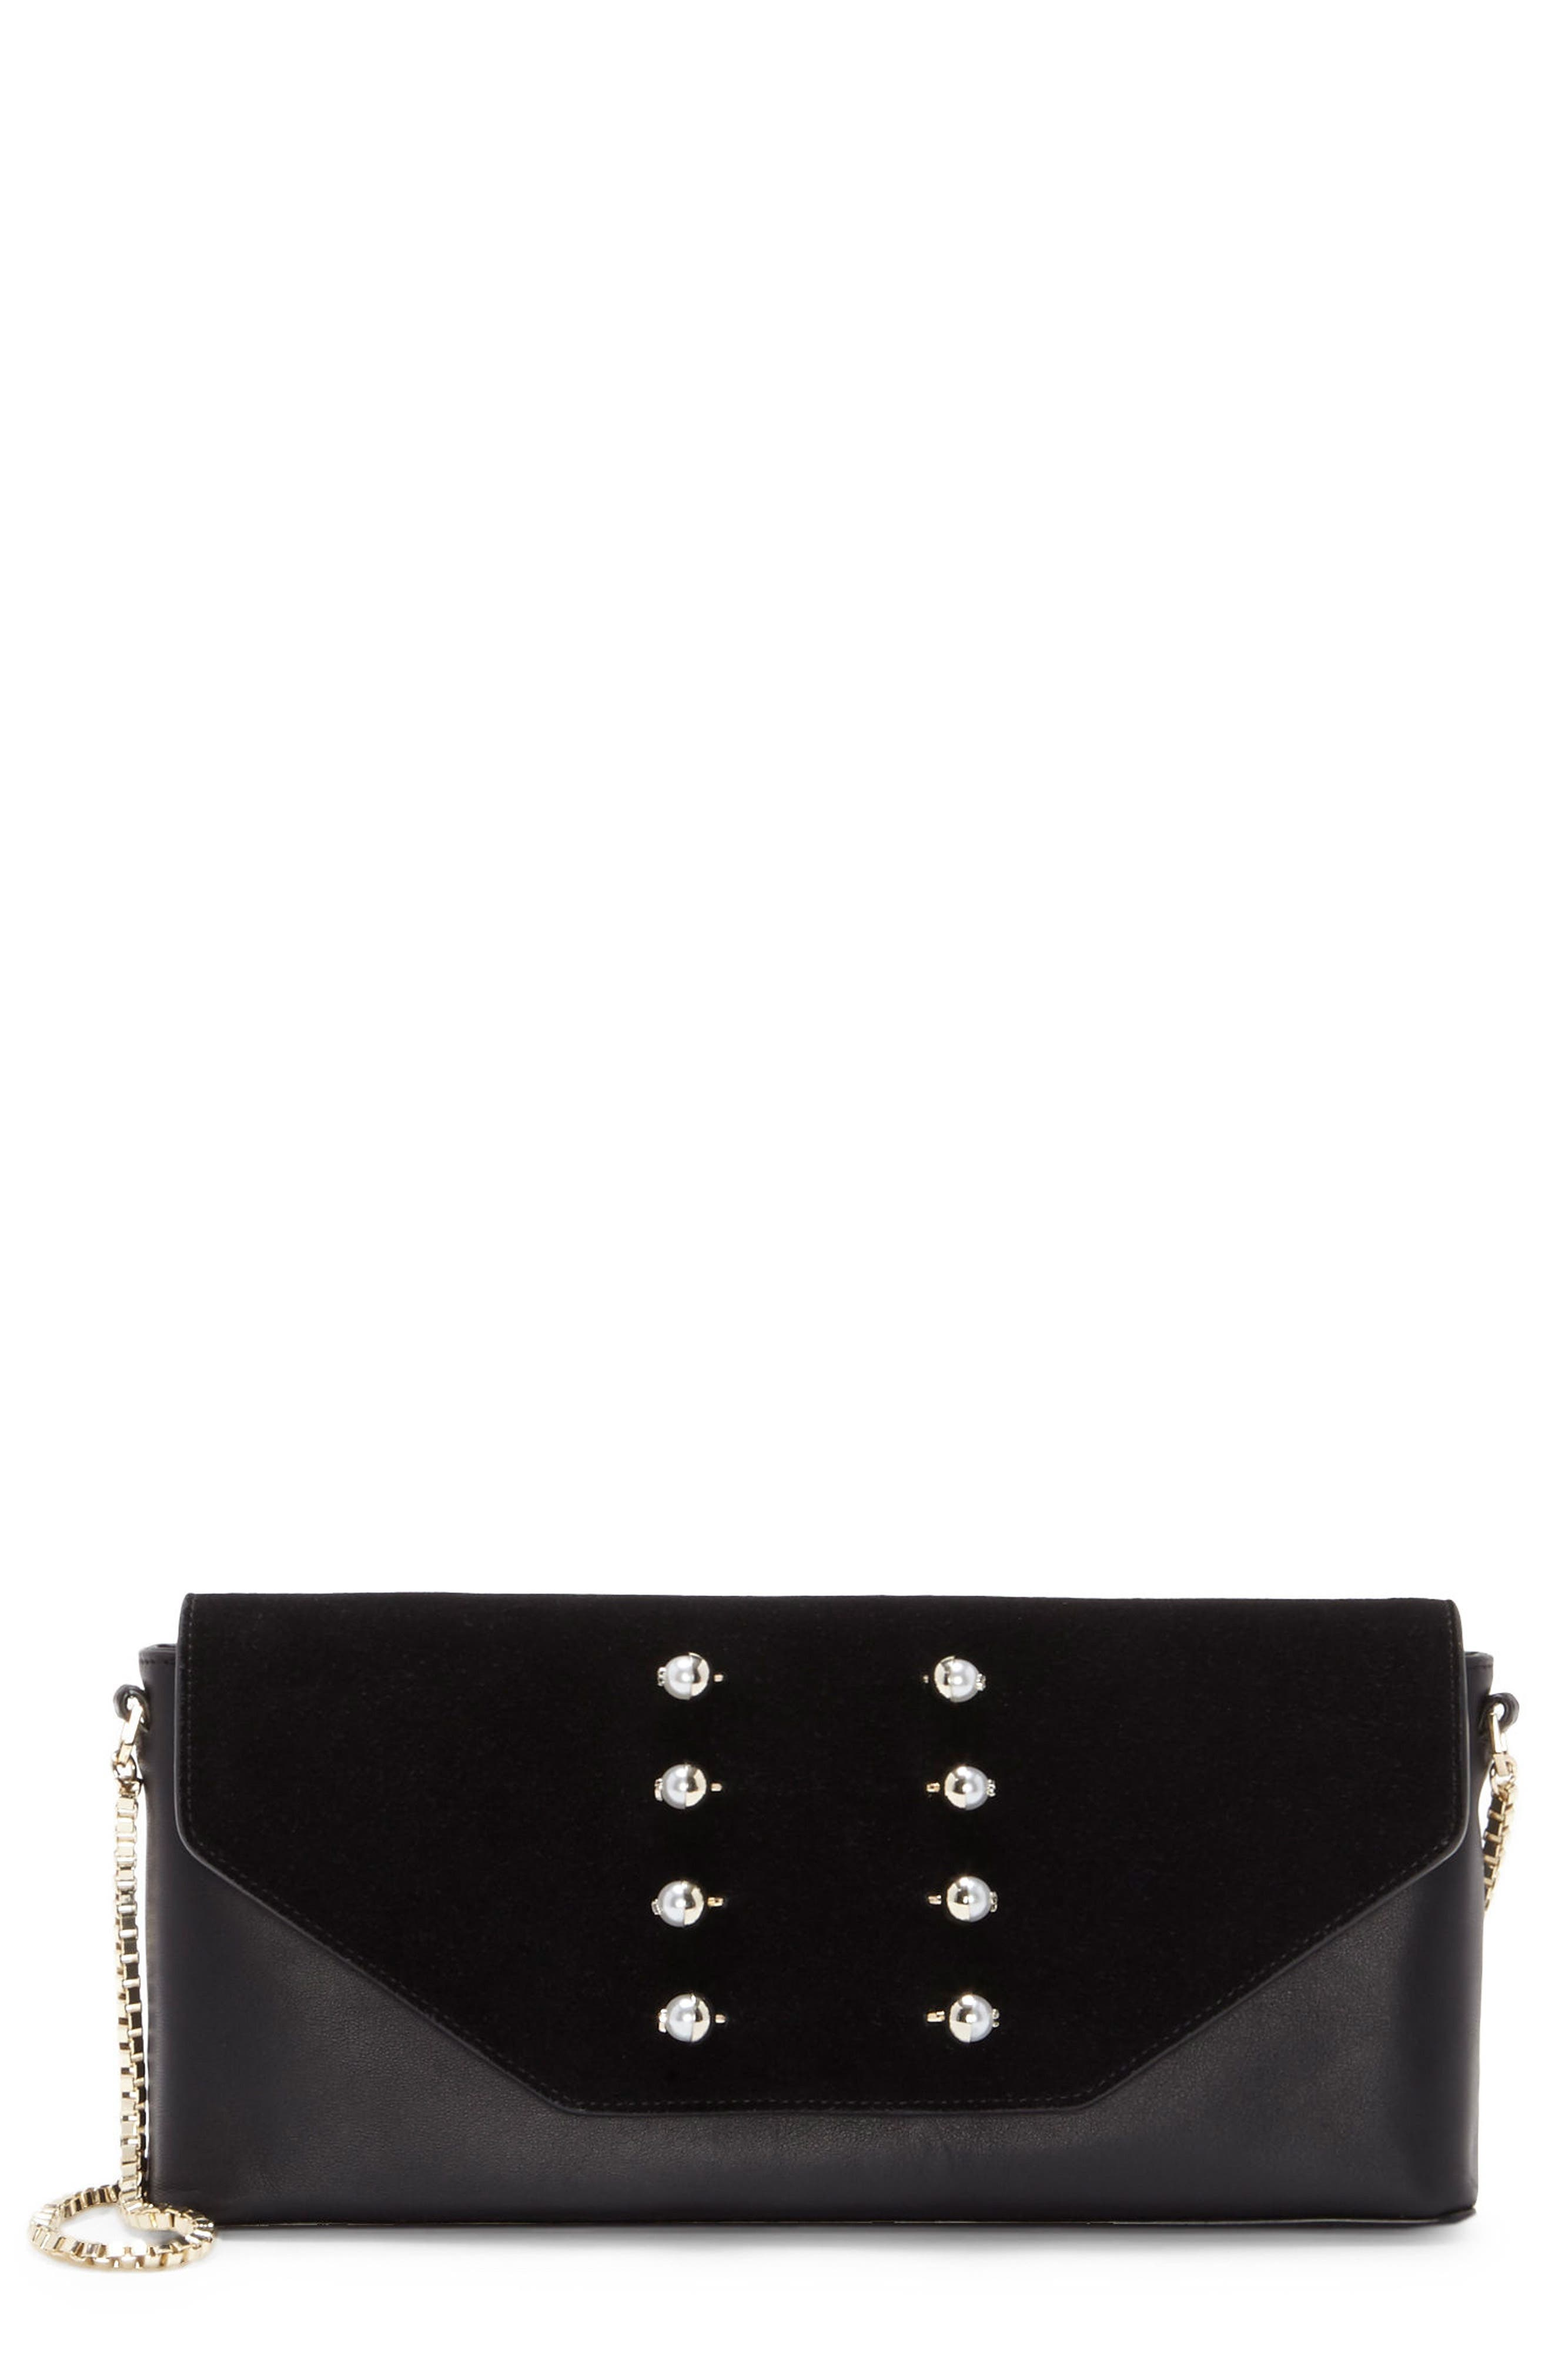 Main Image - Louise et Cie Gya Imitation Pearl Embellished Suede & Leather Clutch